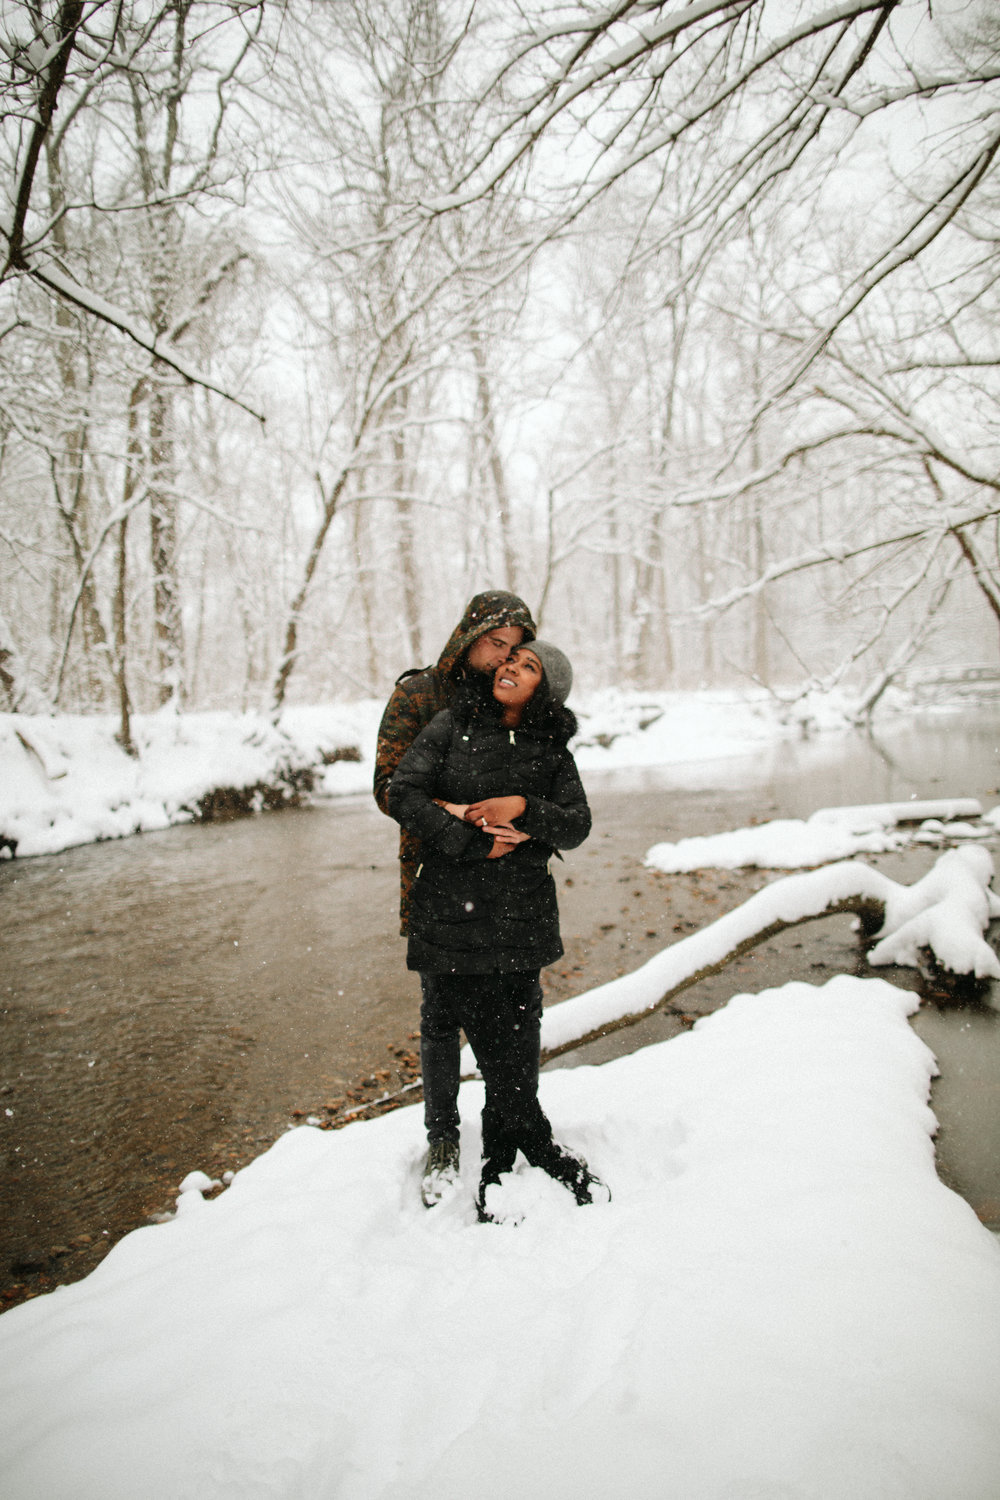 snowy-winter-engagement-session-1-5.jpg